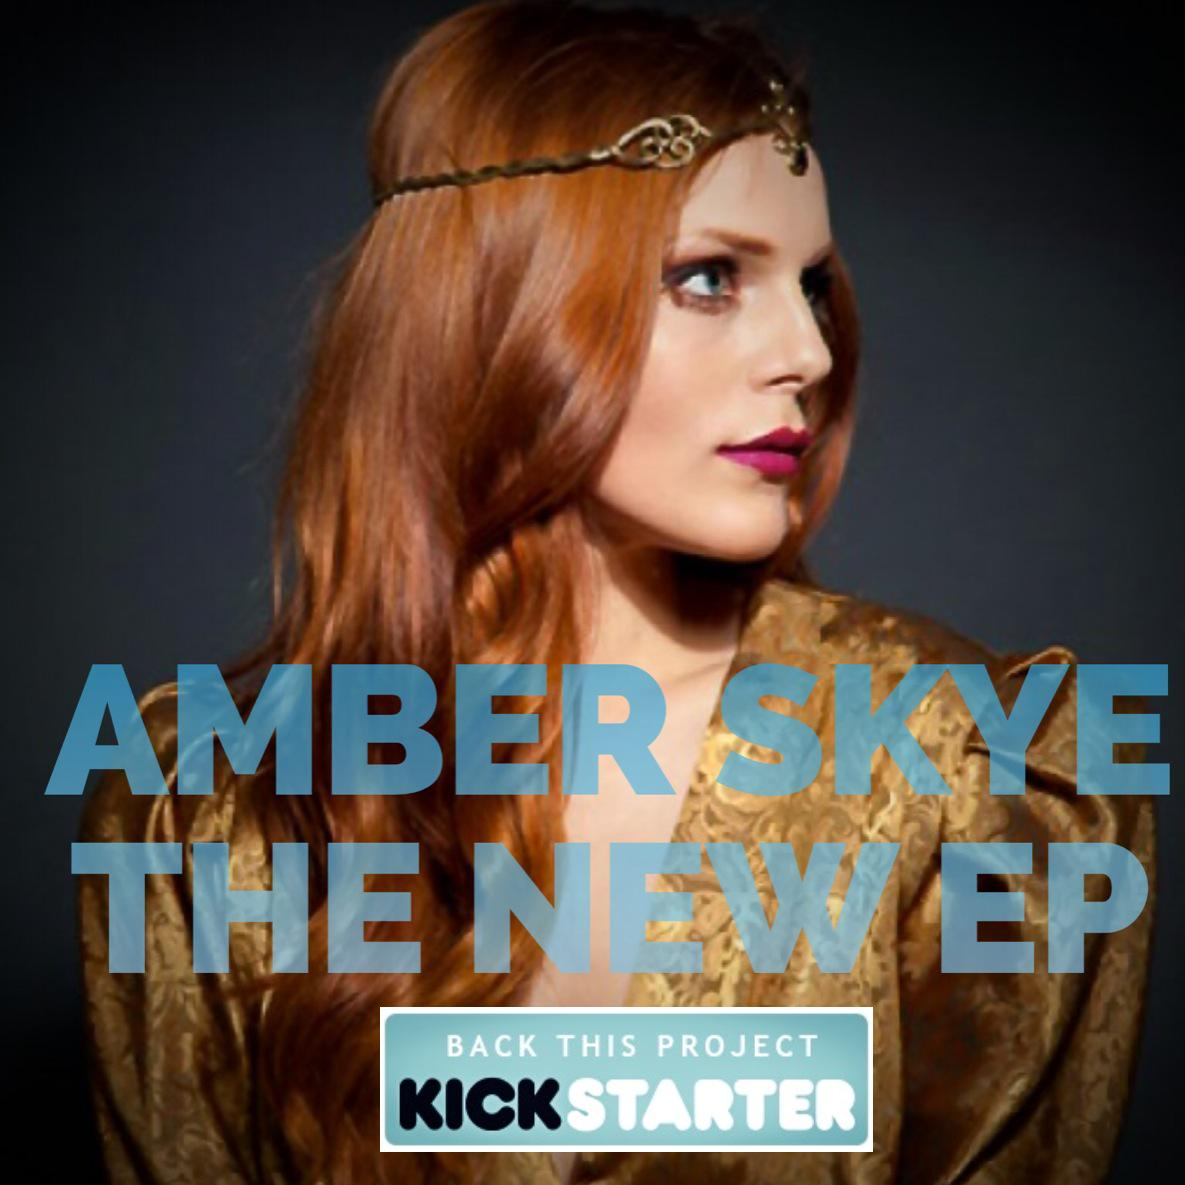 GUESS WHAT! I'm Releasing an EP! BUT I need YOUR help! Watch the Video here: http://t.co/D8PQnpshPF #MUSIC #amberskye http://t.co/HoEGVBPhYK